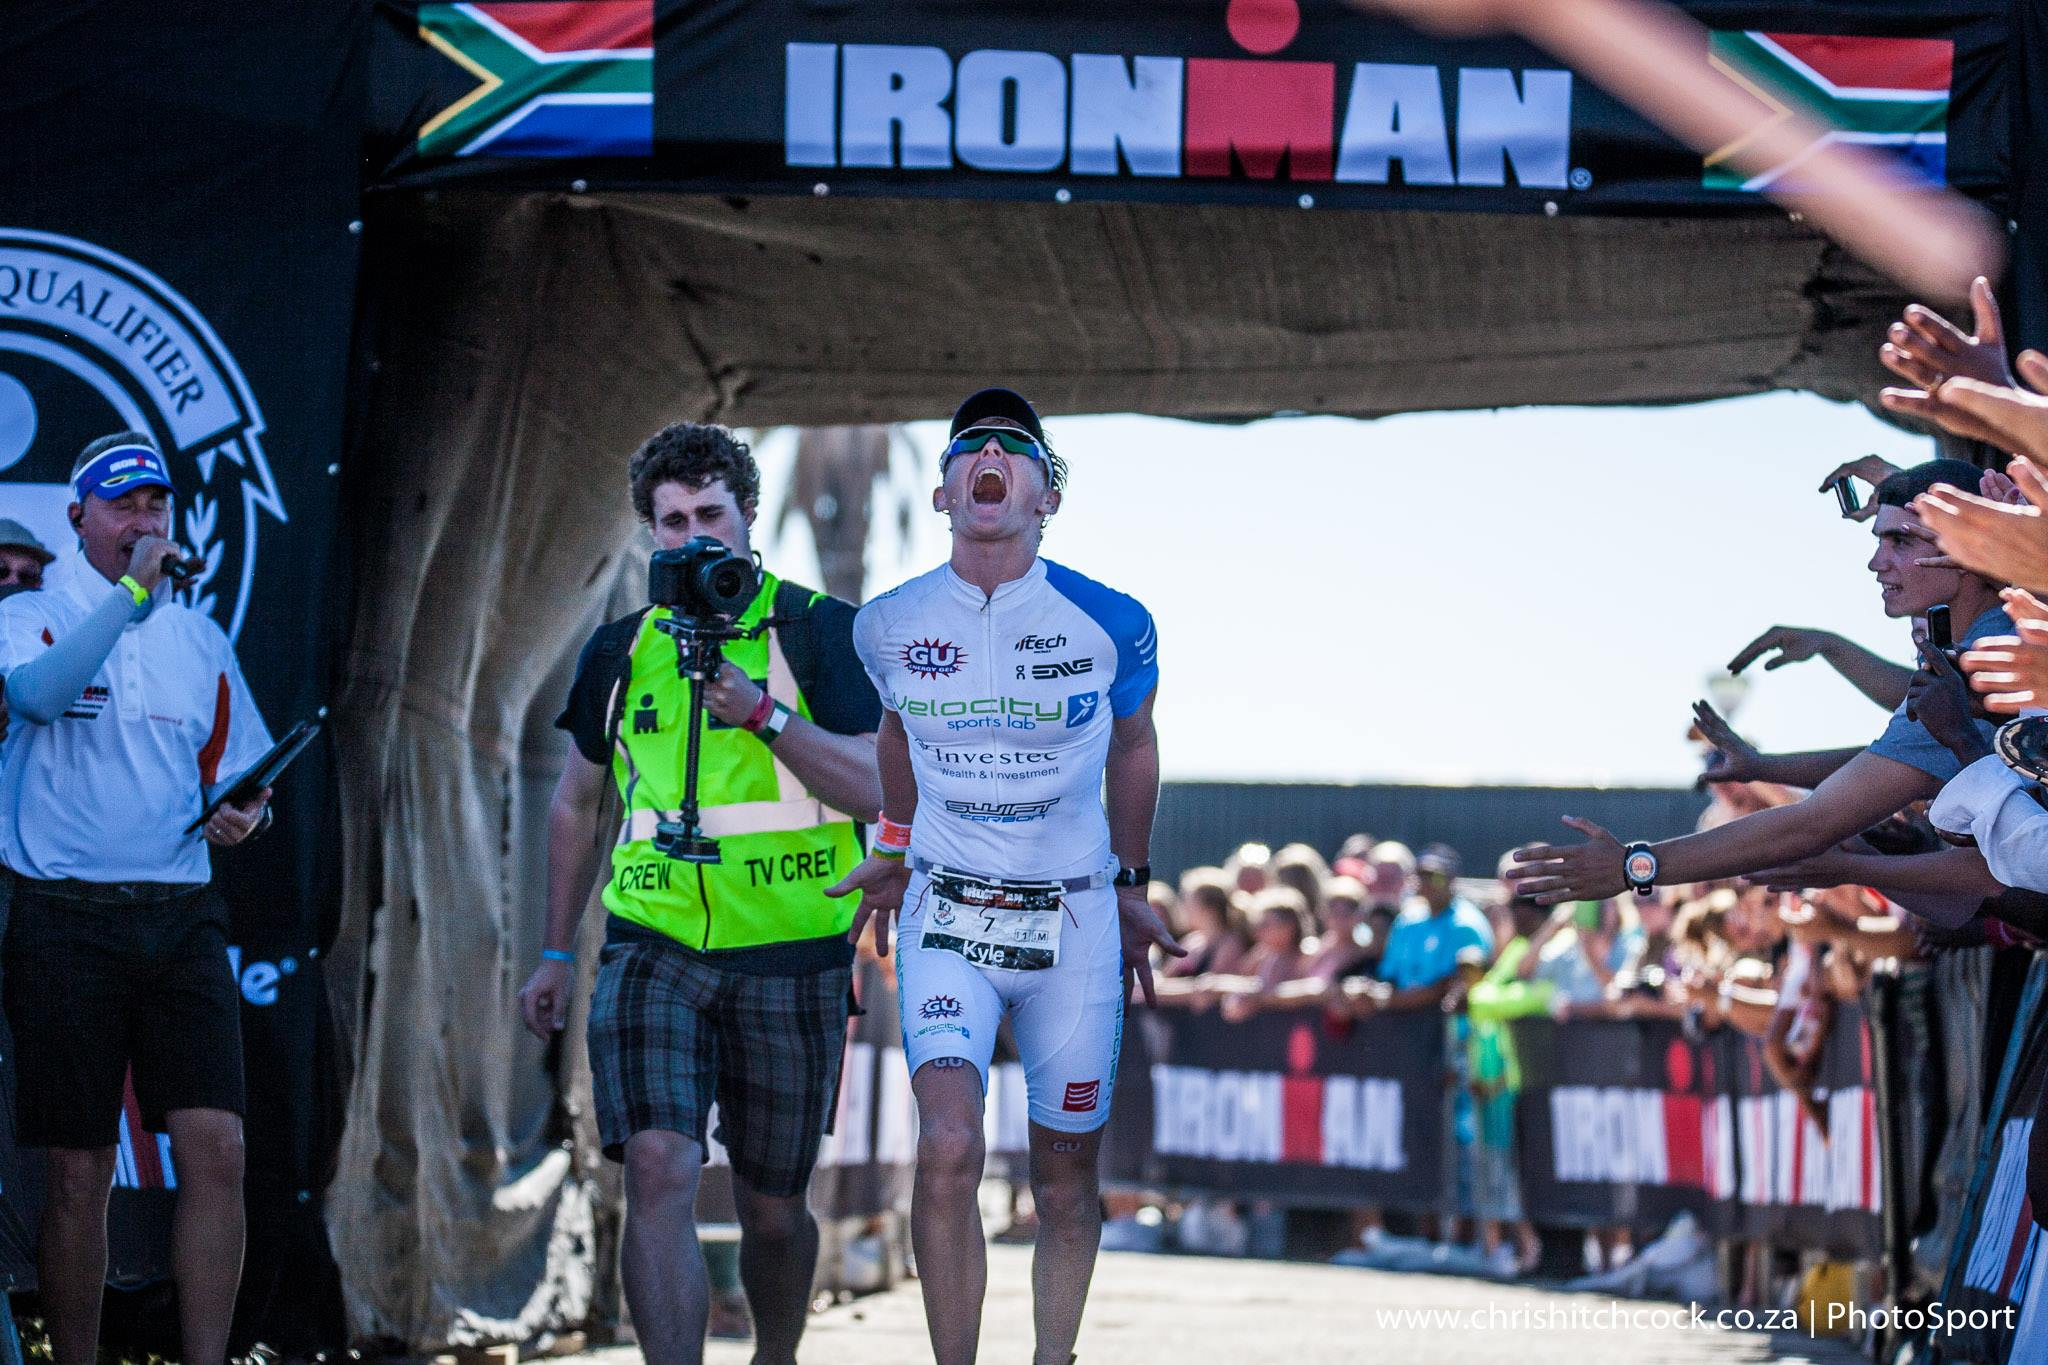 Ironman South Africa 2014- 2nd place